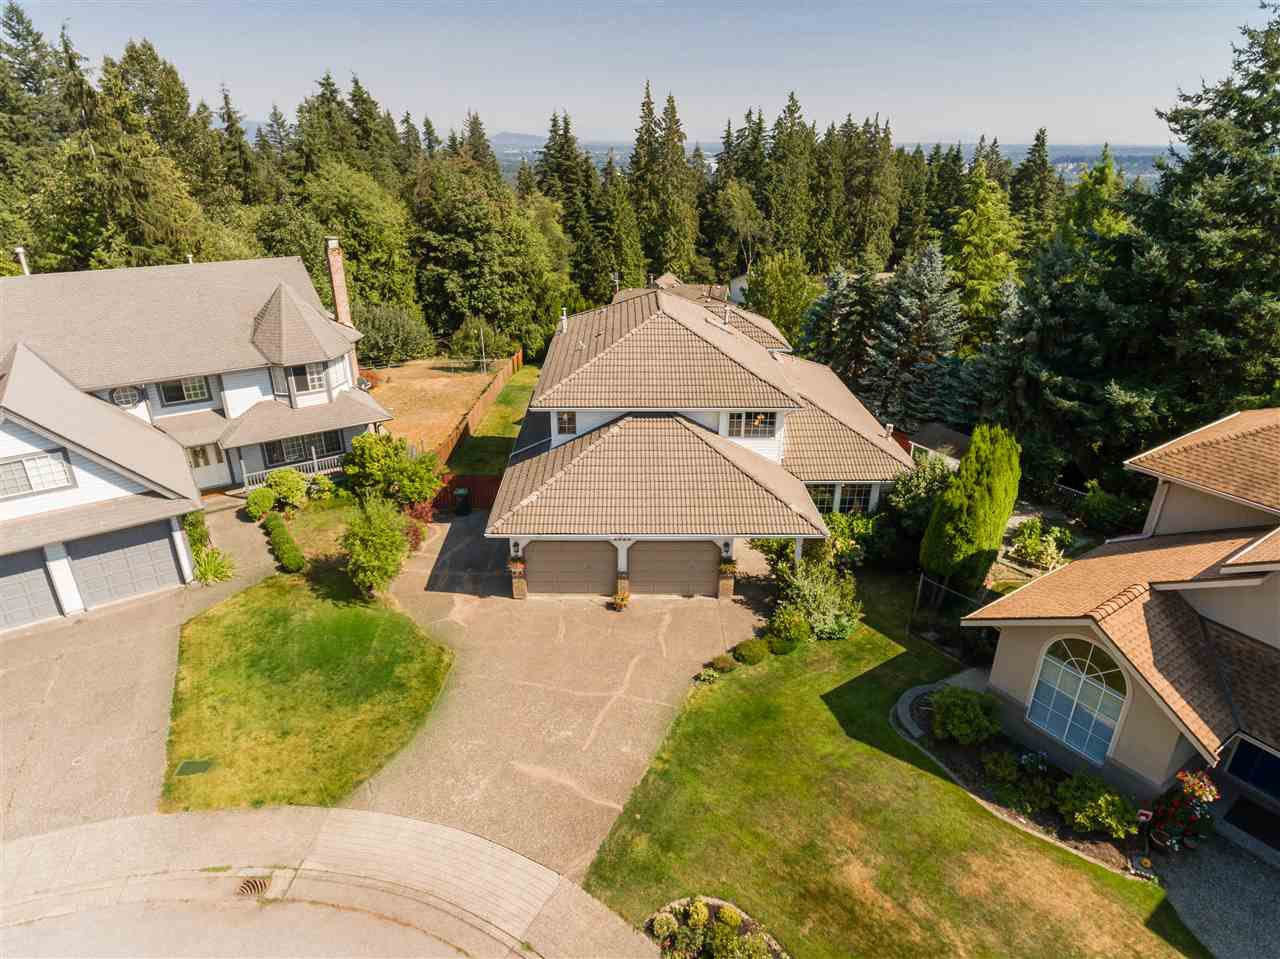 Main Photo: 2620 UPLANDS Court in Coquitlam: Upper Eagle Ridge House for sale : MLS®# R2379562